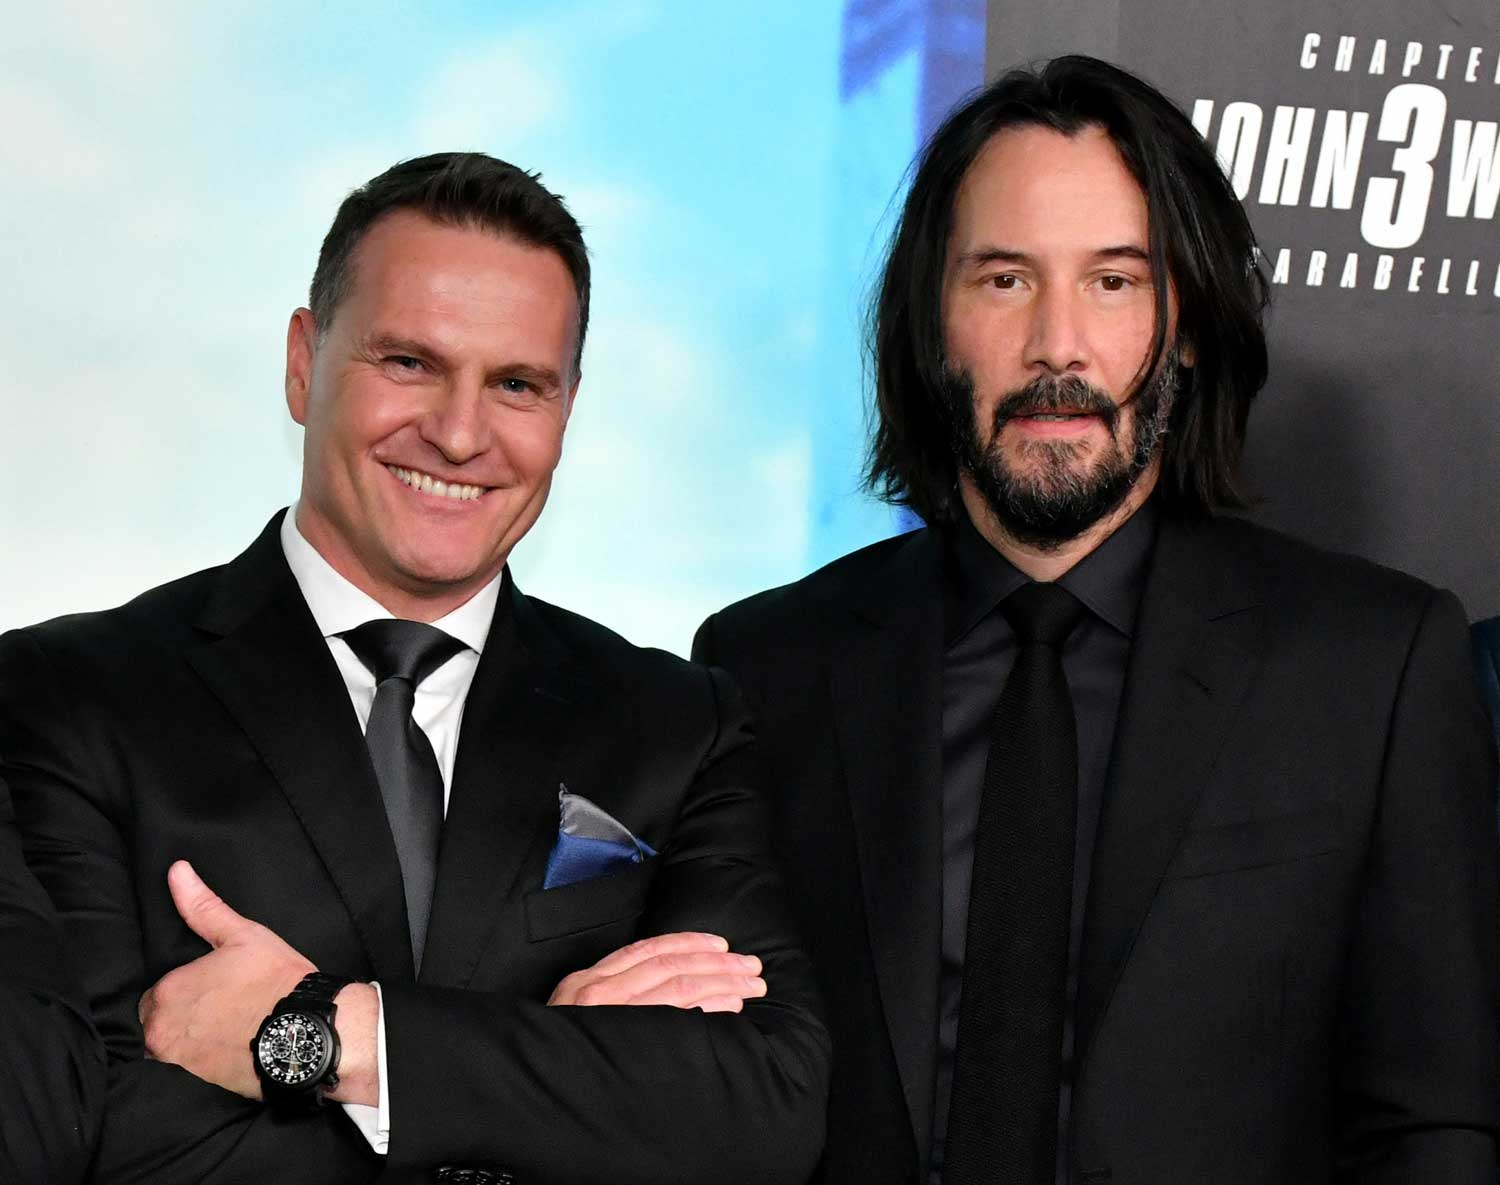 """BROOKLYN, NEW YORK - MAY 09, 2019: Carl F. Bucherer CEO Sascha Moeri (L) and Keanu Reeves attend 'Time For The Big Screen' presented by Carl F. Bucherer to celebrate the premiere of """"John Wick: Chapter 3 - Parabellum"""" on May 09, 2019 in Brooklyn City. (Photo by Craig Barritt/Getty Images for Carl F. Bucherer)"""